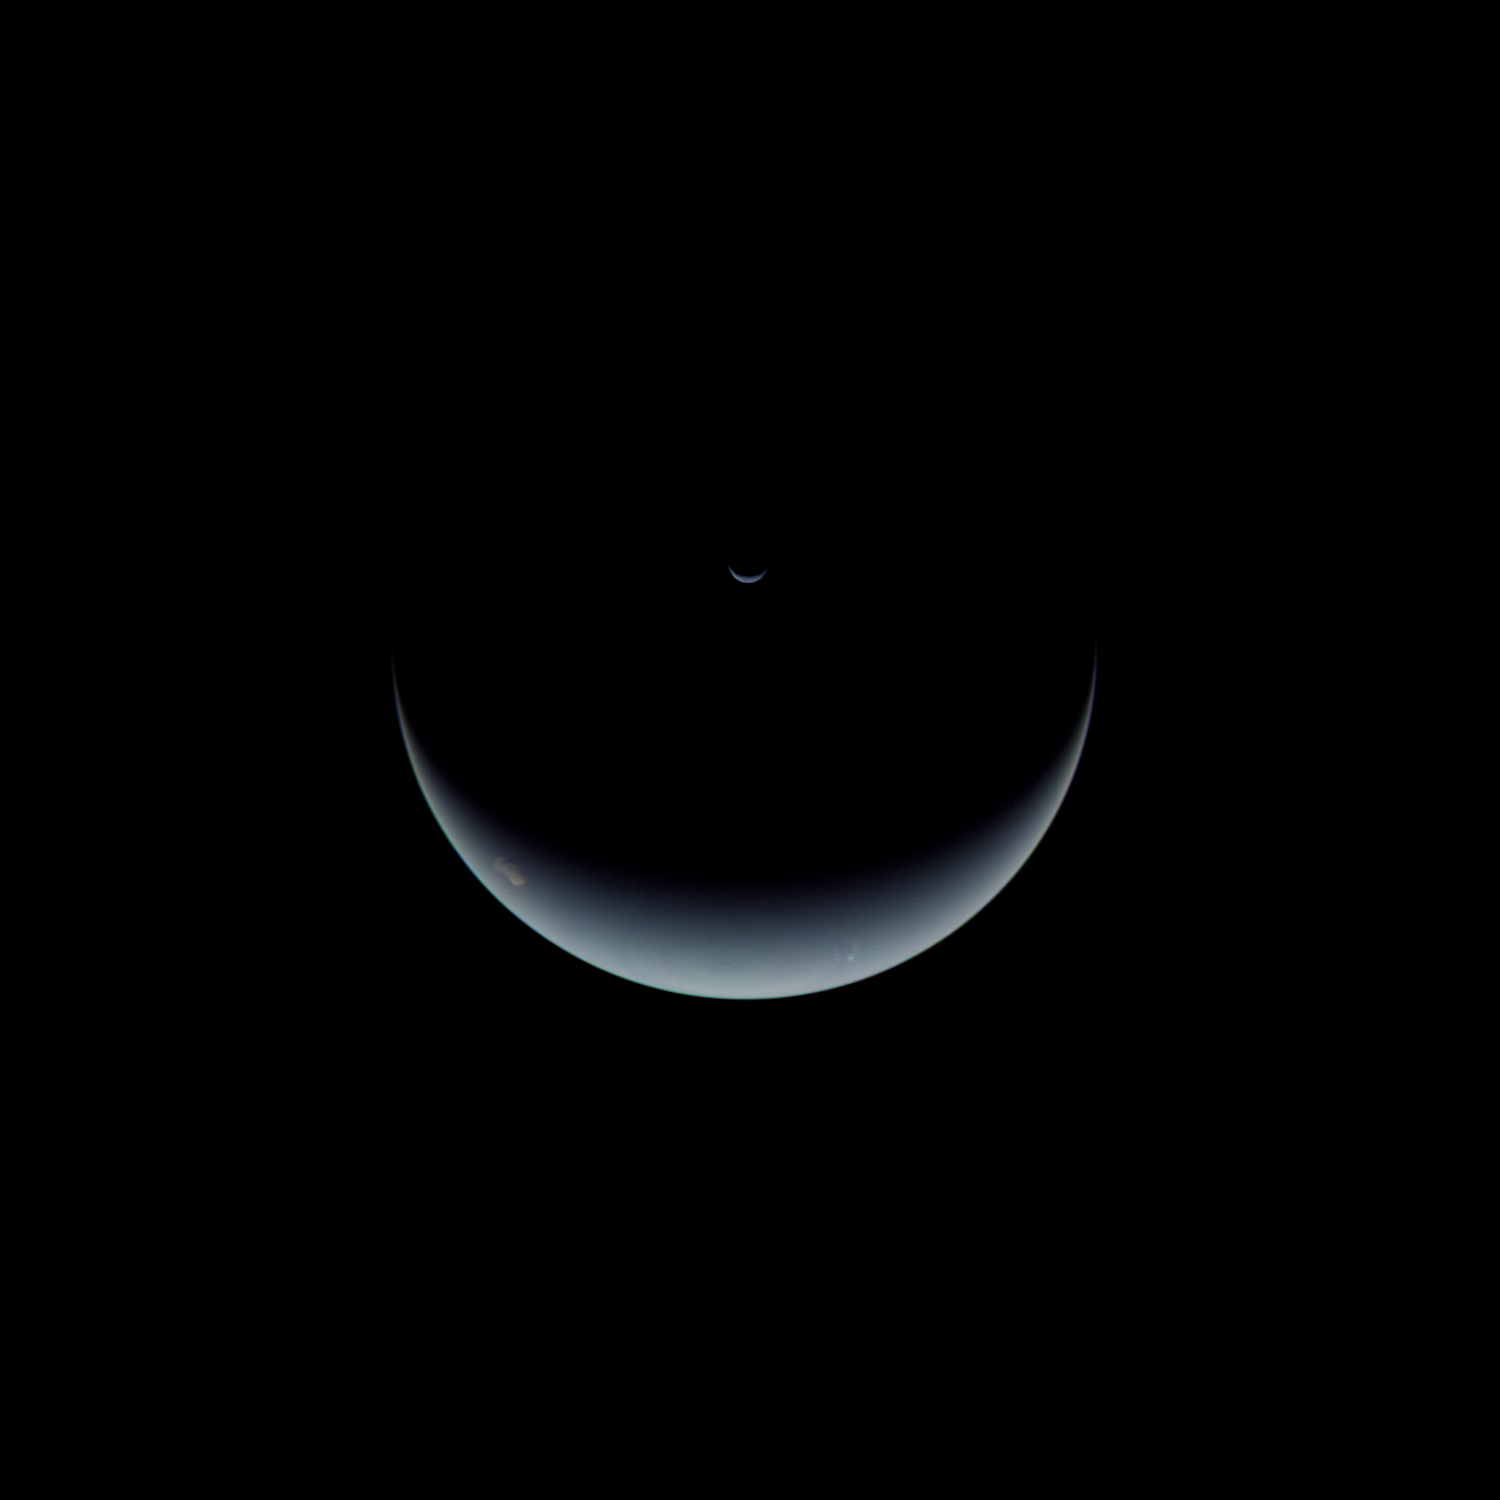 Crescent Neptune And Triton The Planetary Society